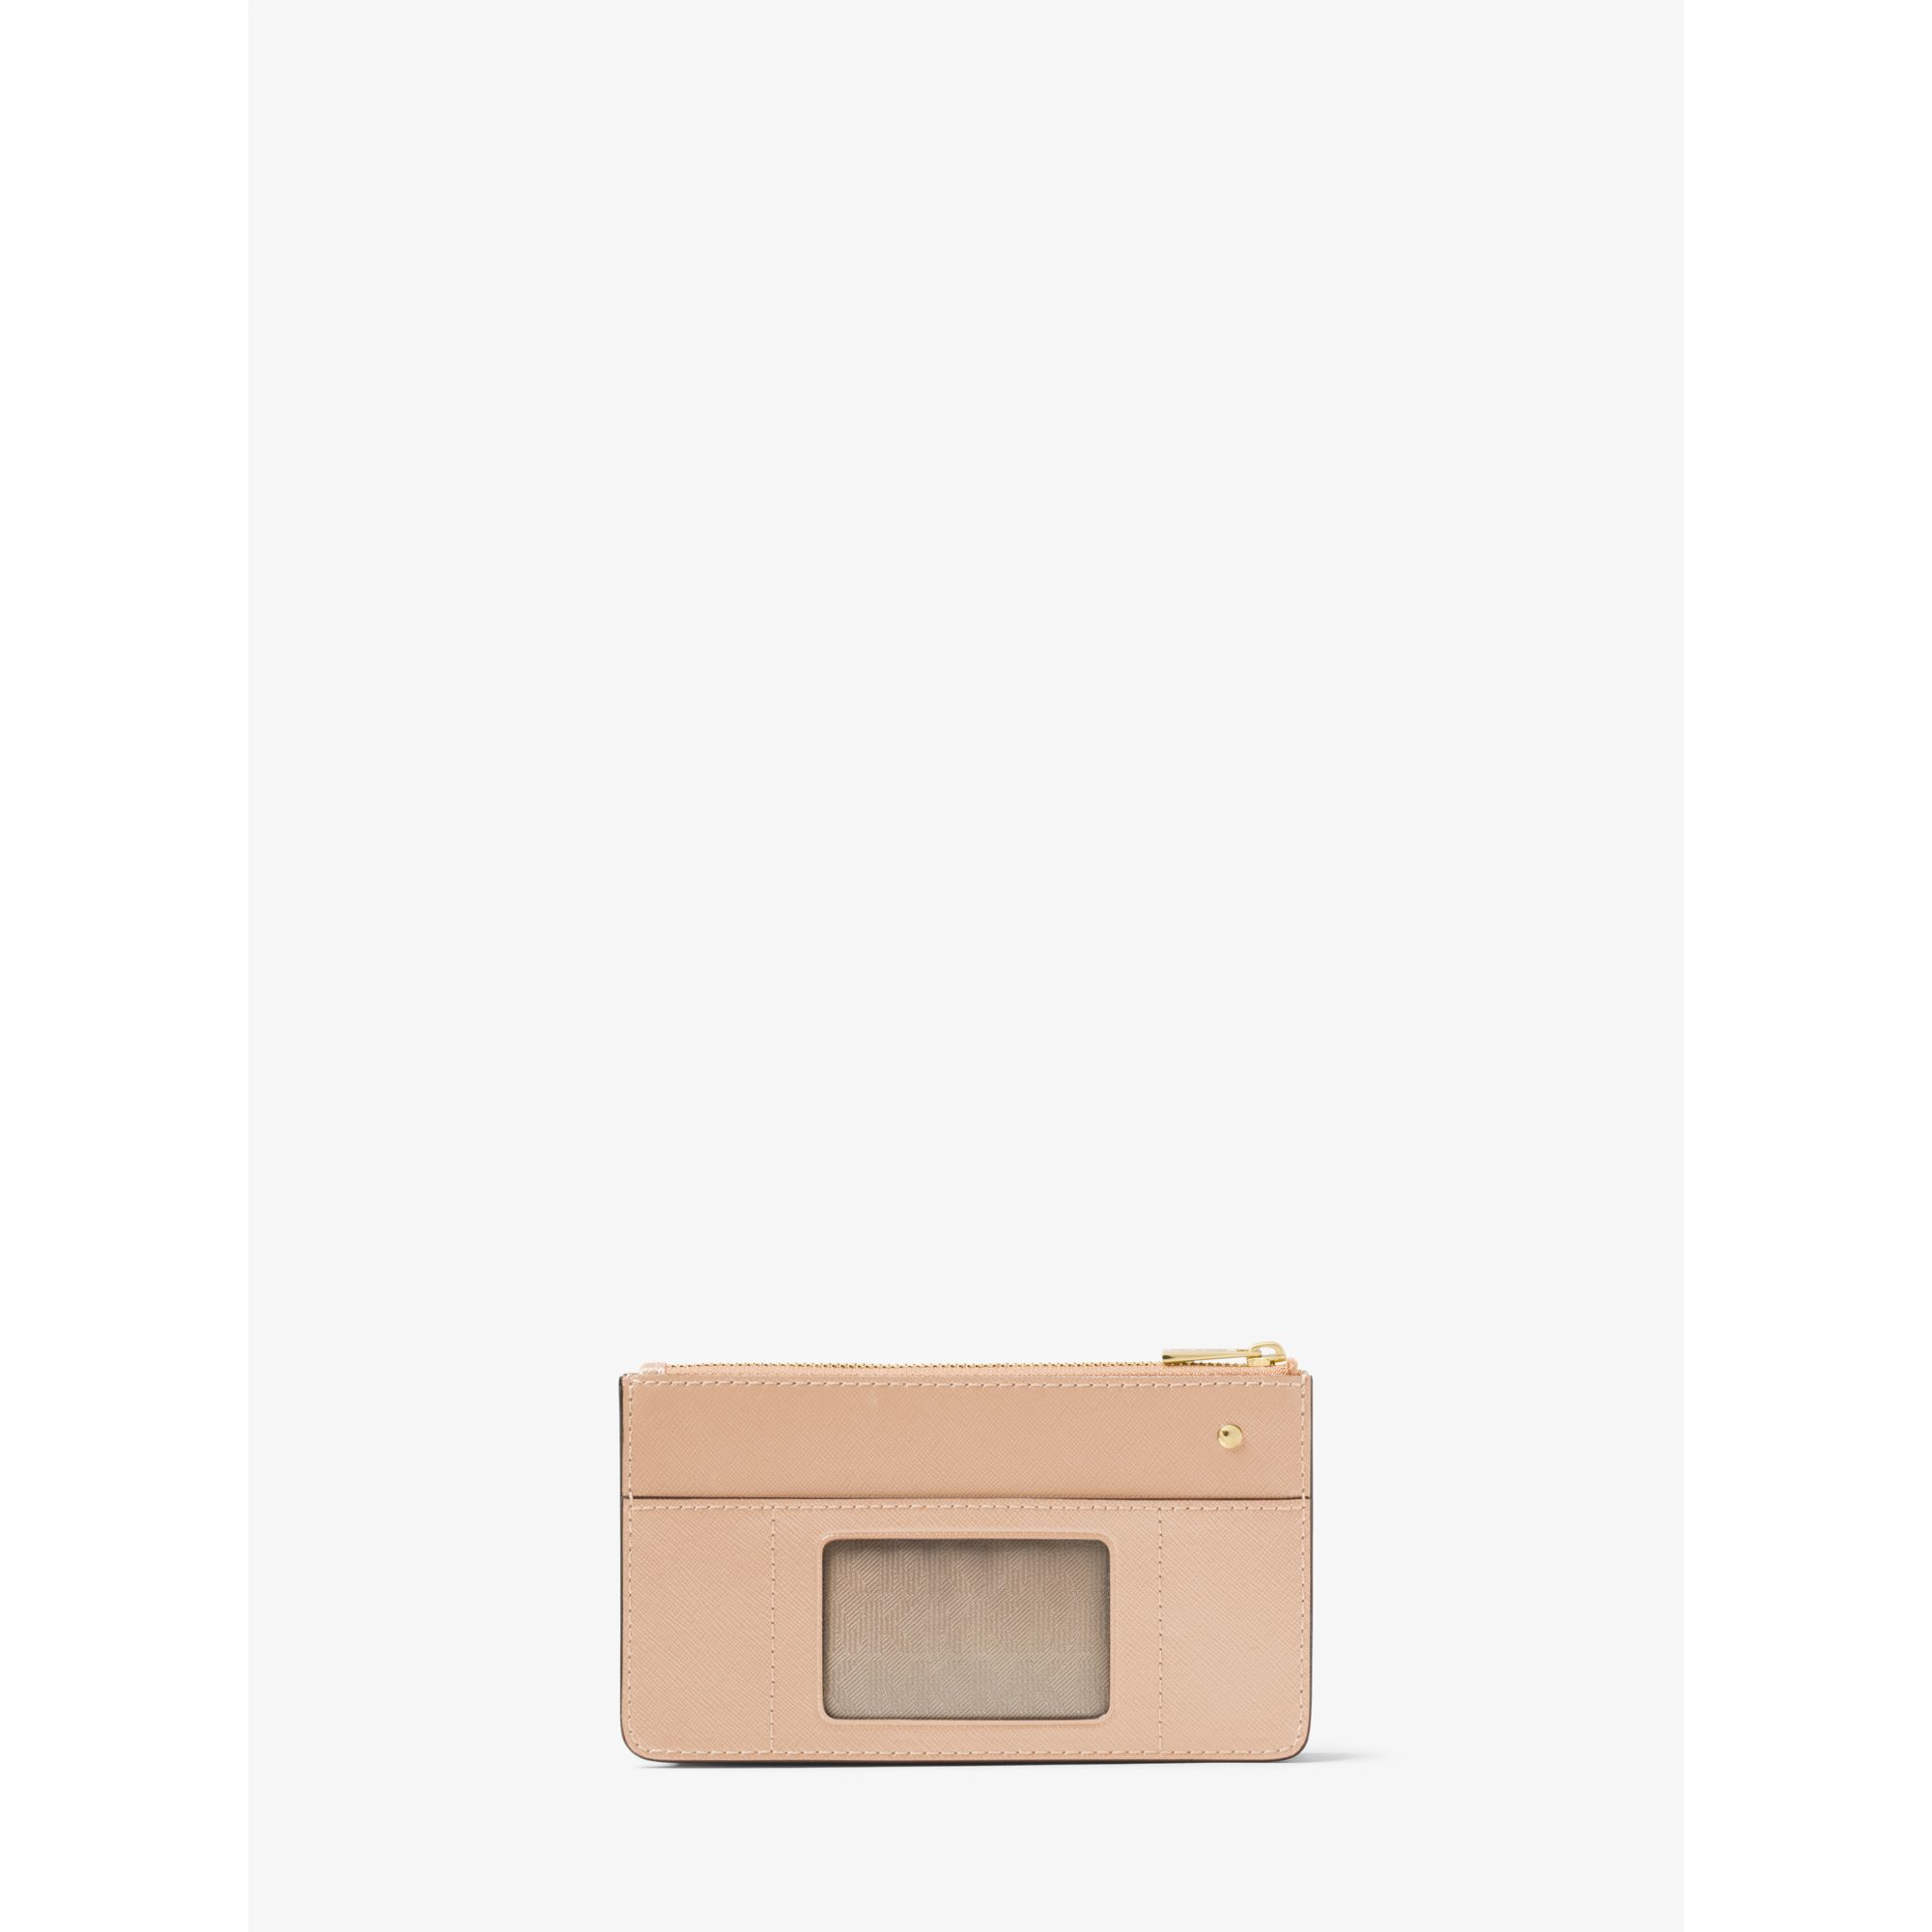 da95973639df Lyst - Michael Kors Travel Patent-leather Smartphone Card Pouch